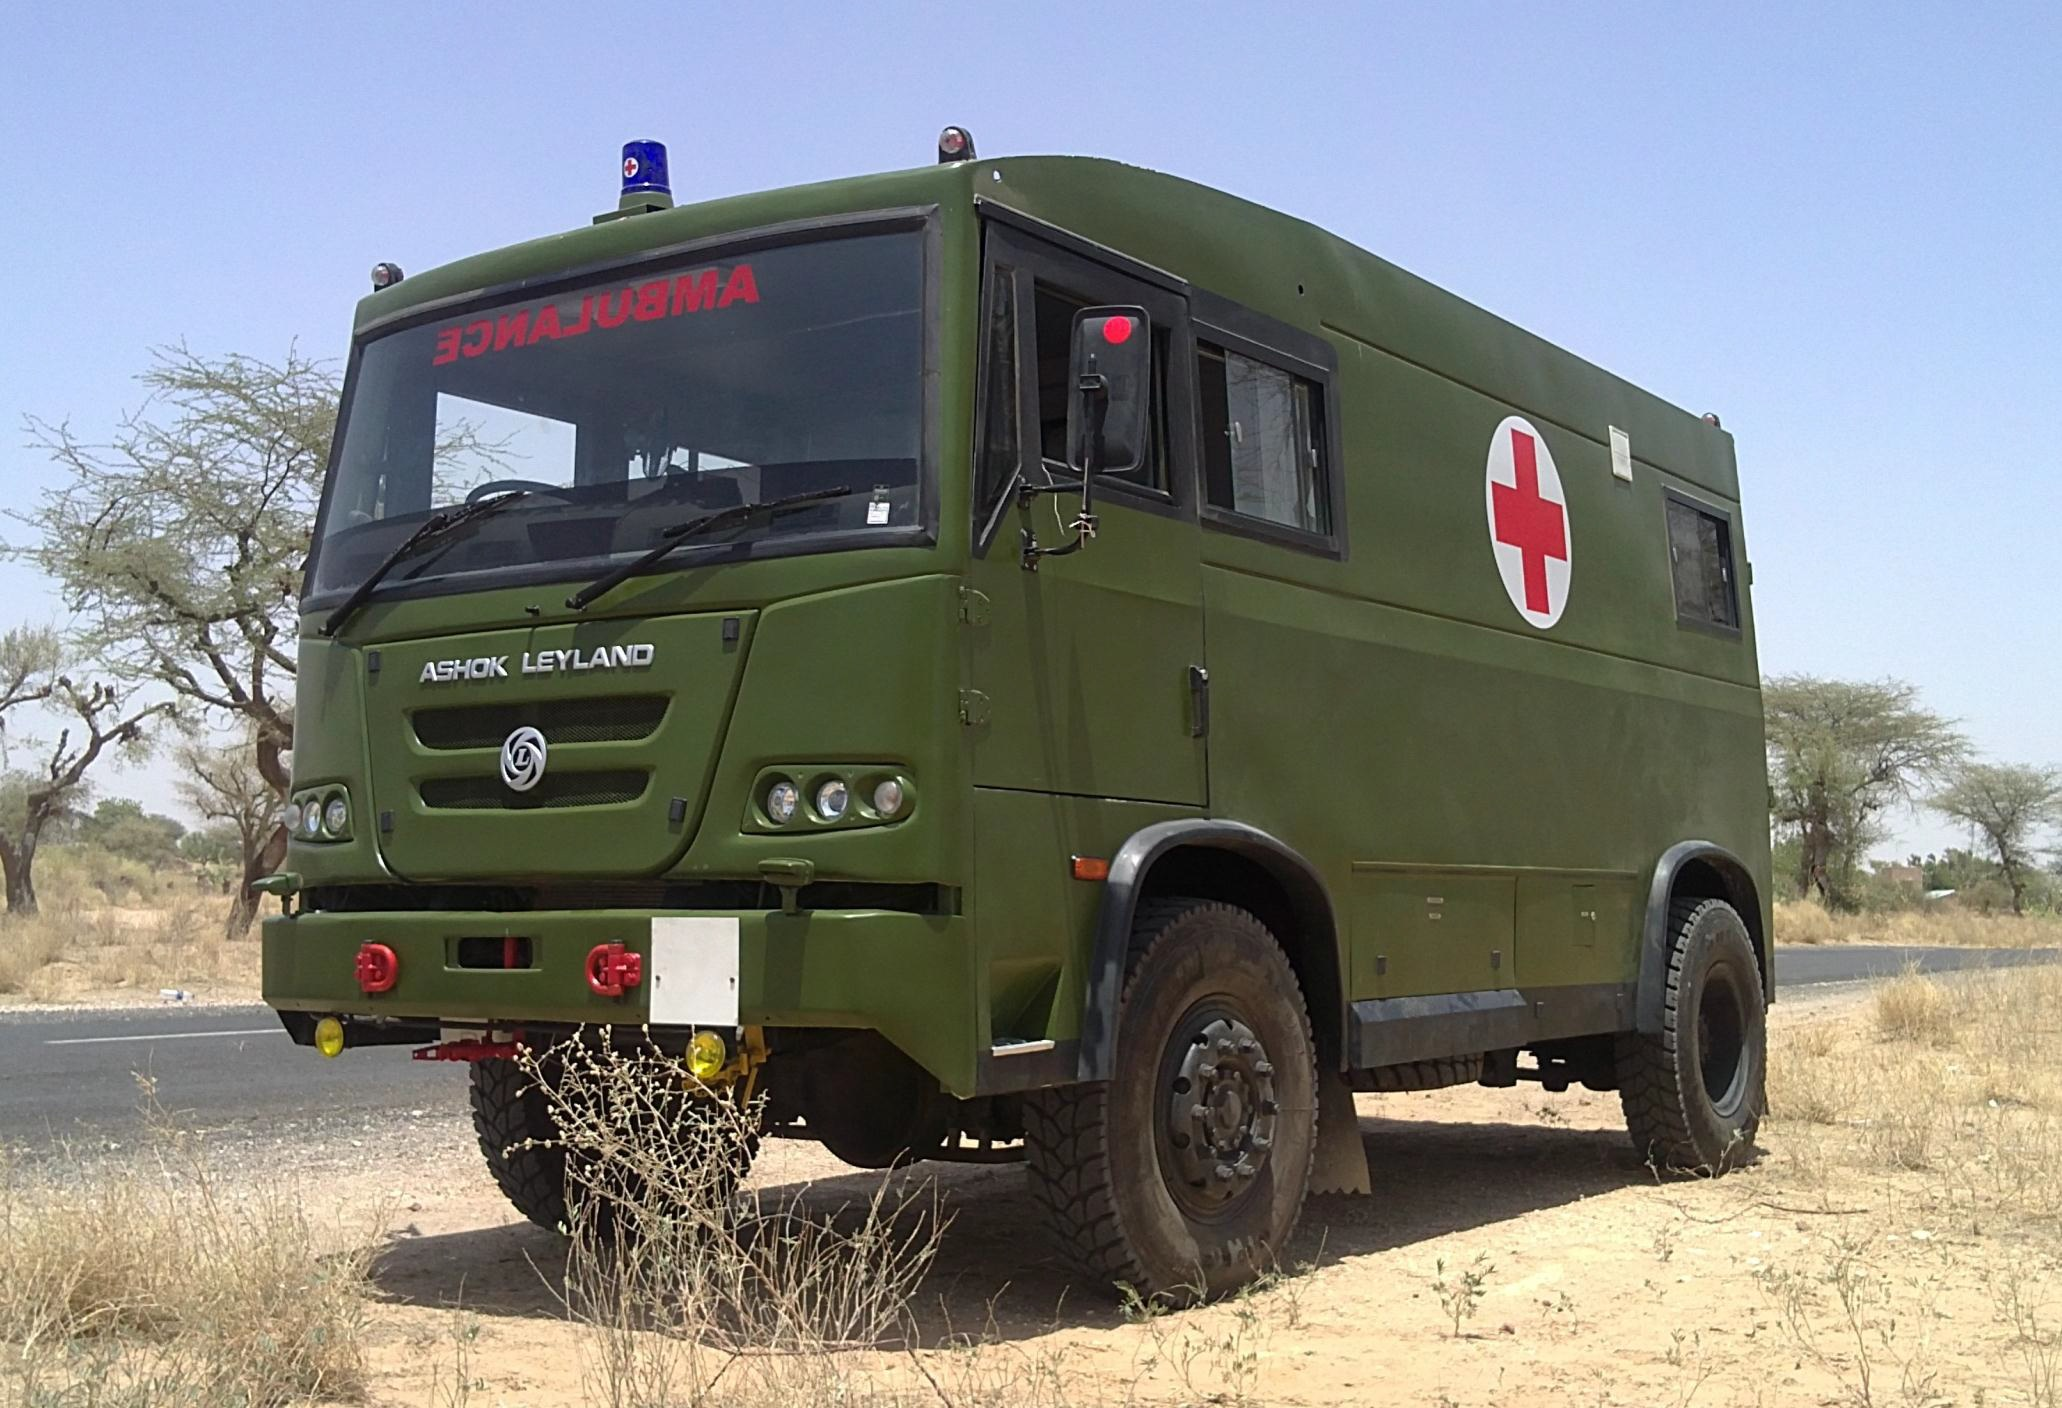 Indian Army Has Ordered 825 Ashok Leyland Ambulance 4 215 4